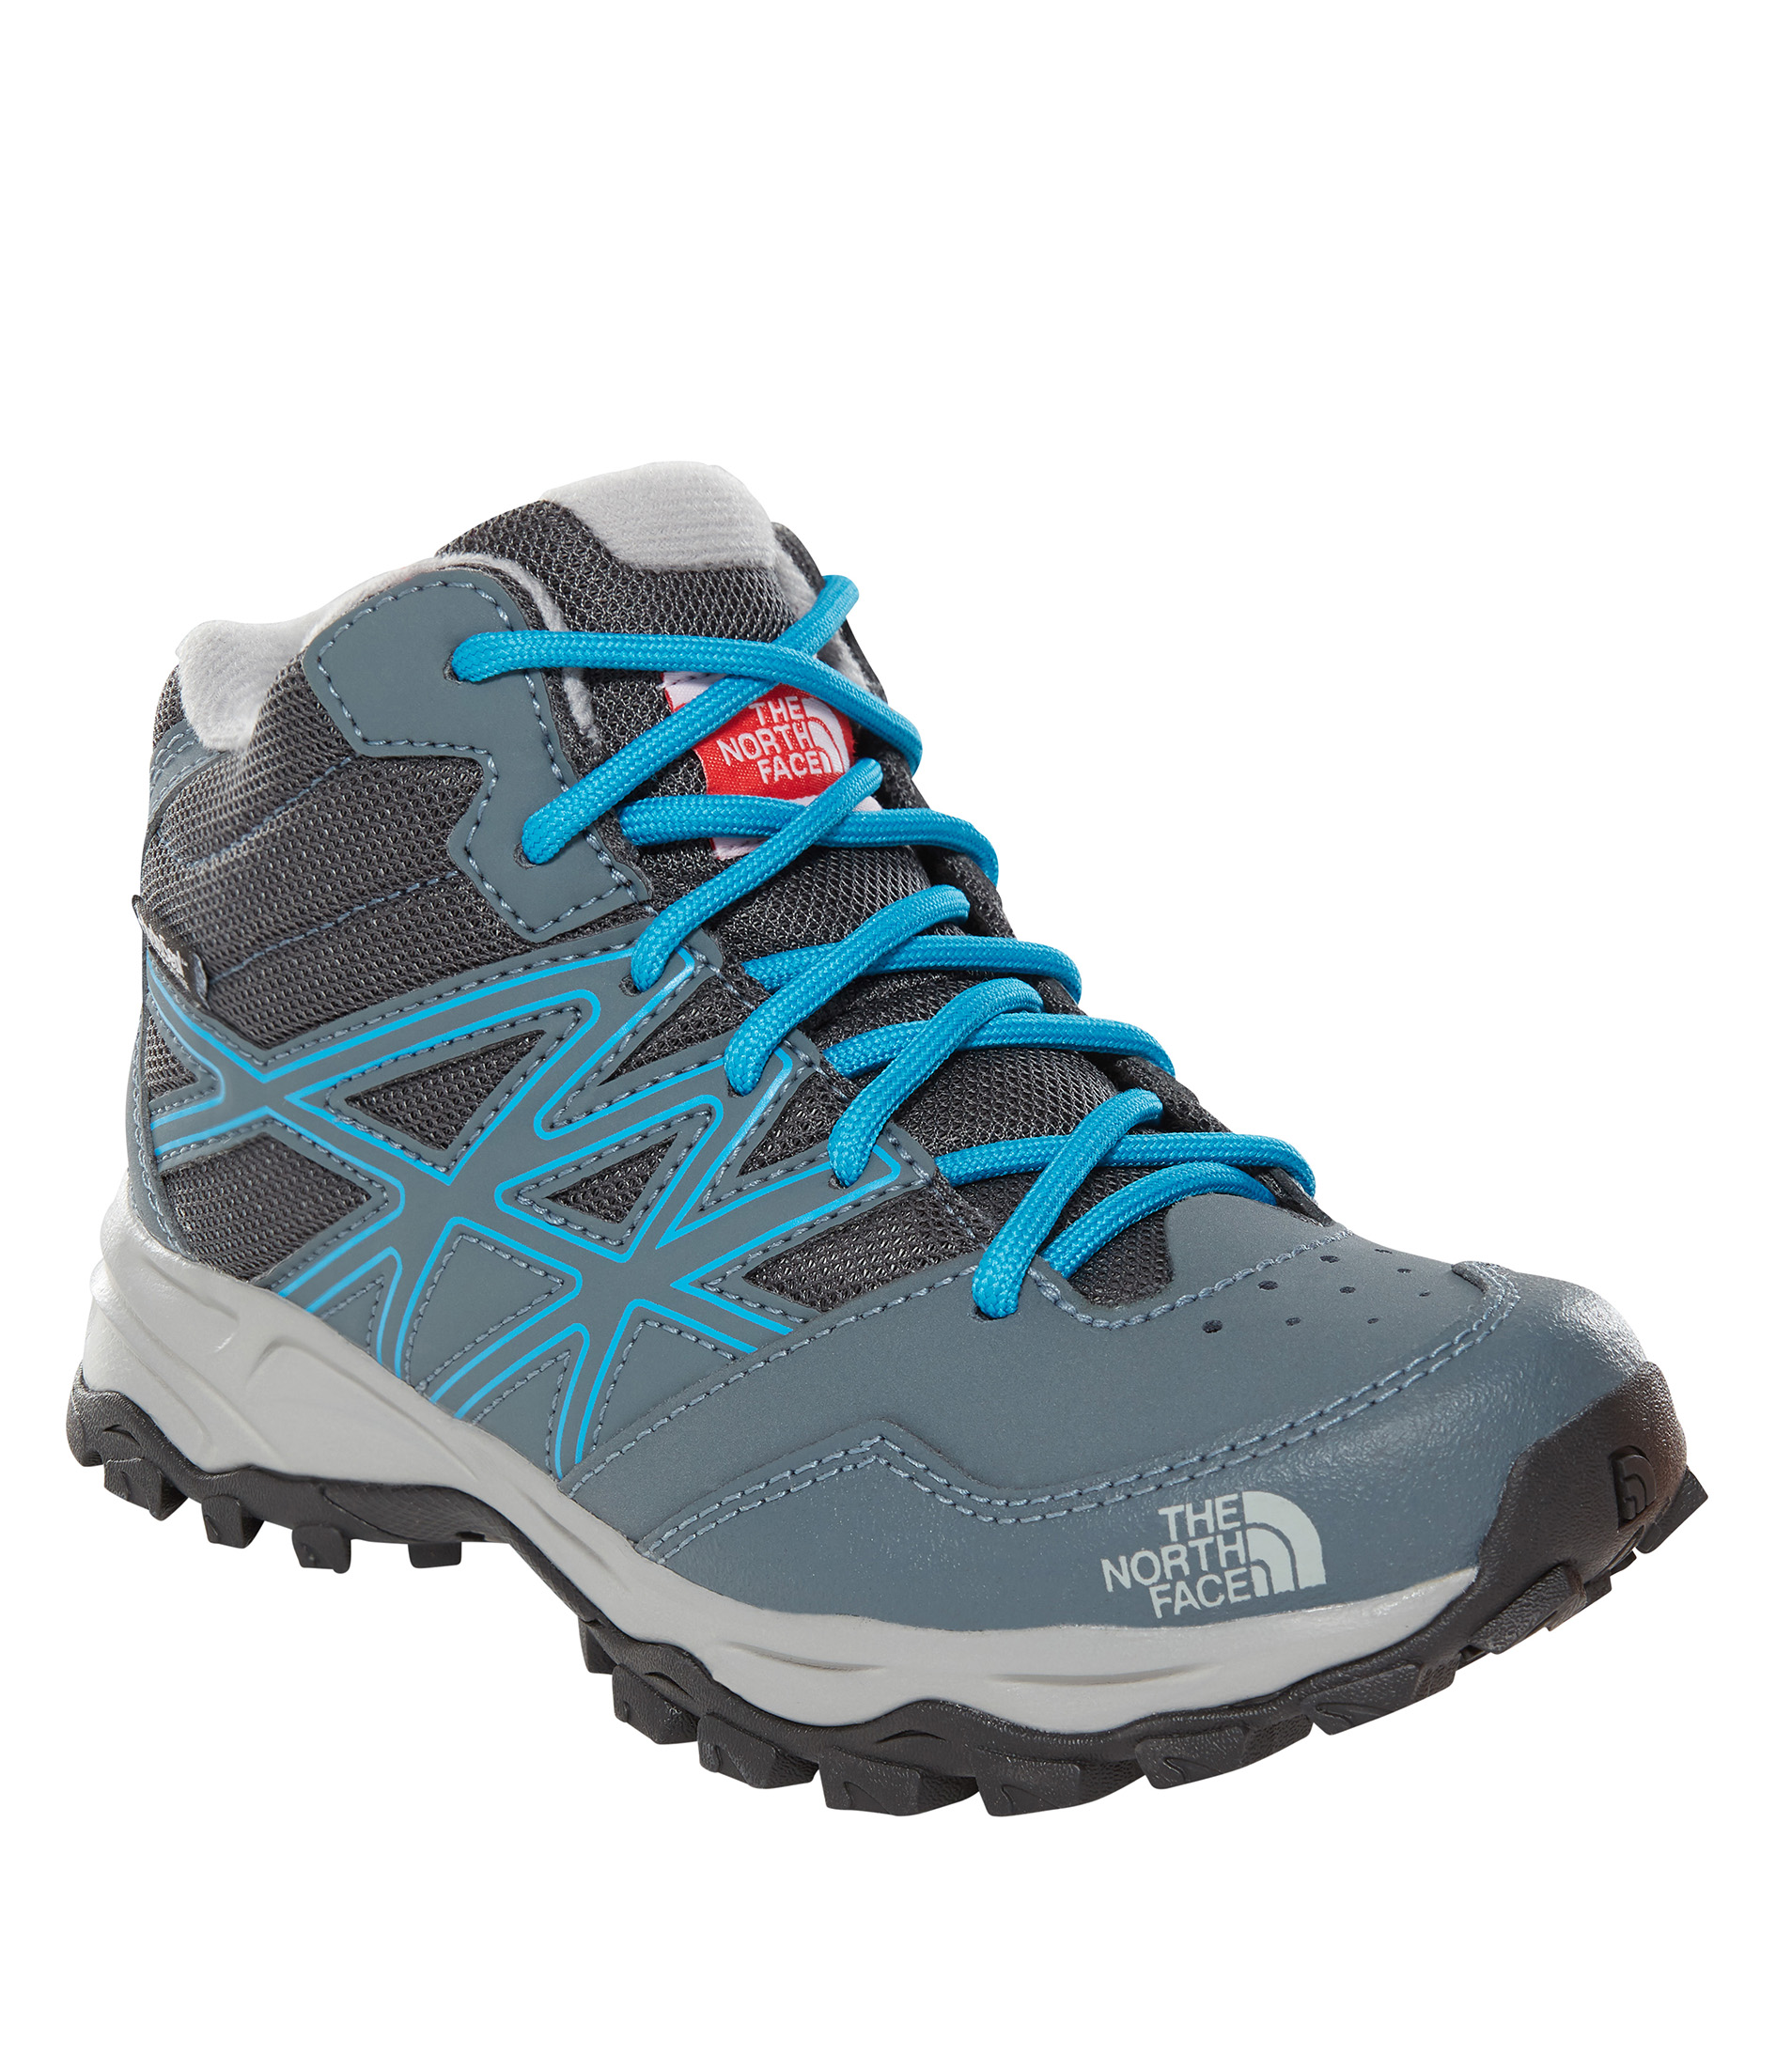 THE NORTH FACE JR HH HIKER MID WP, TURBULENCE GREY velikost: UK 2